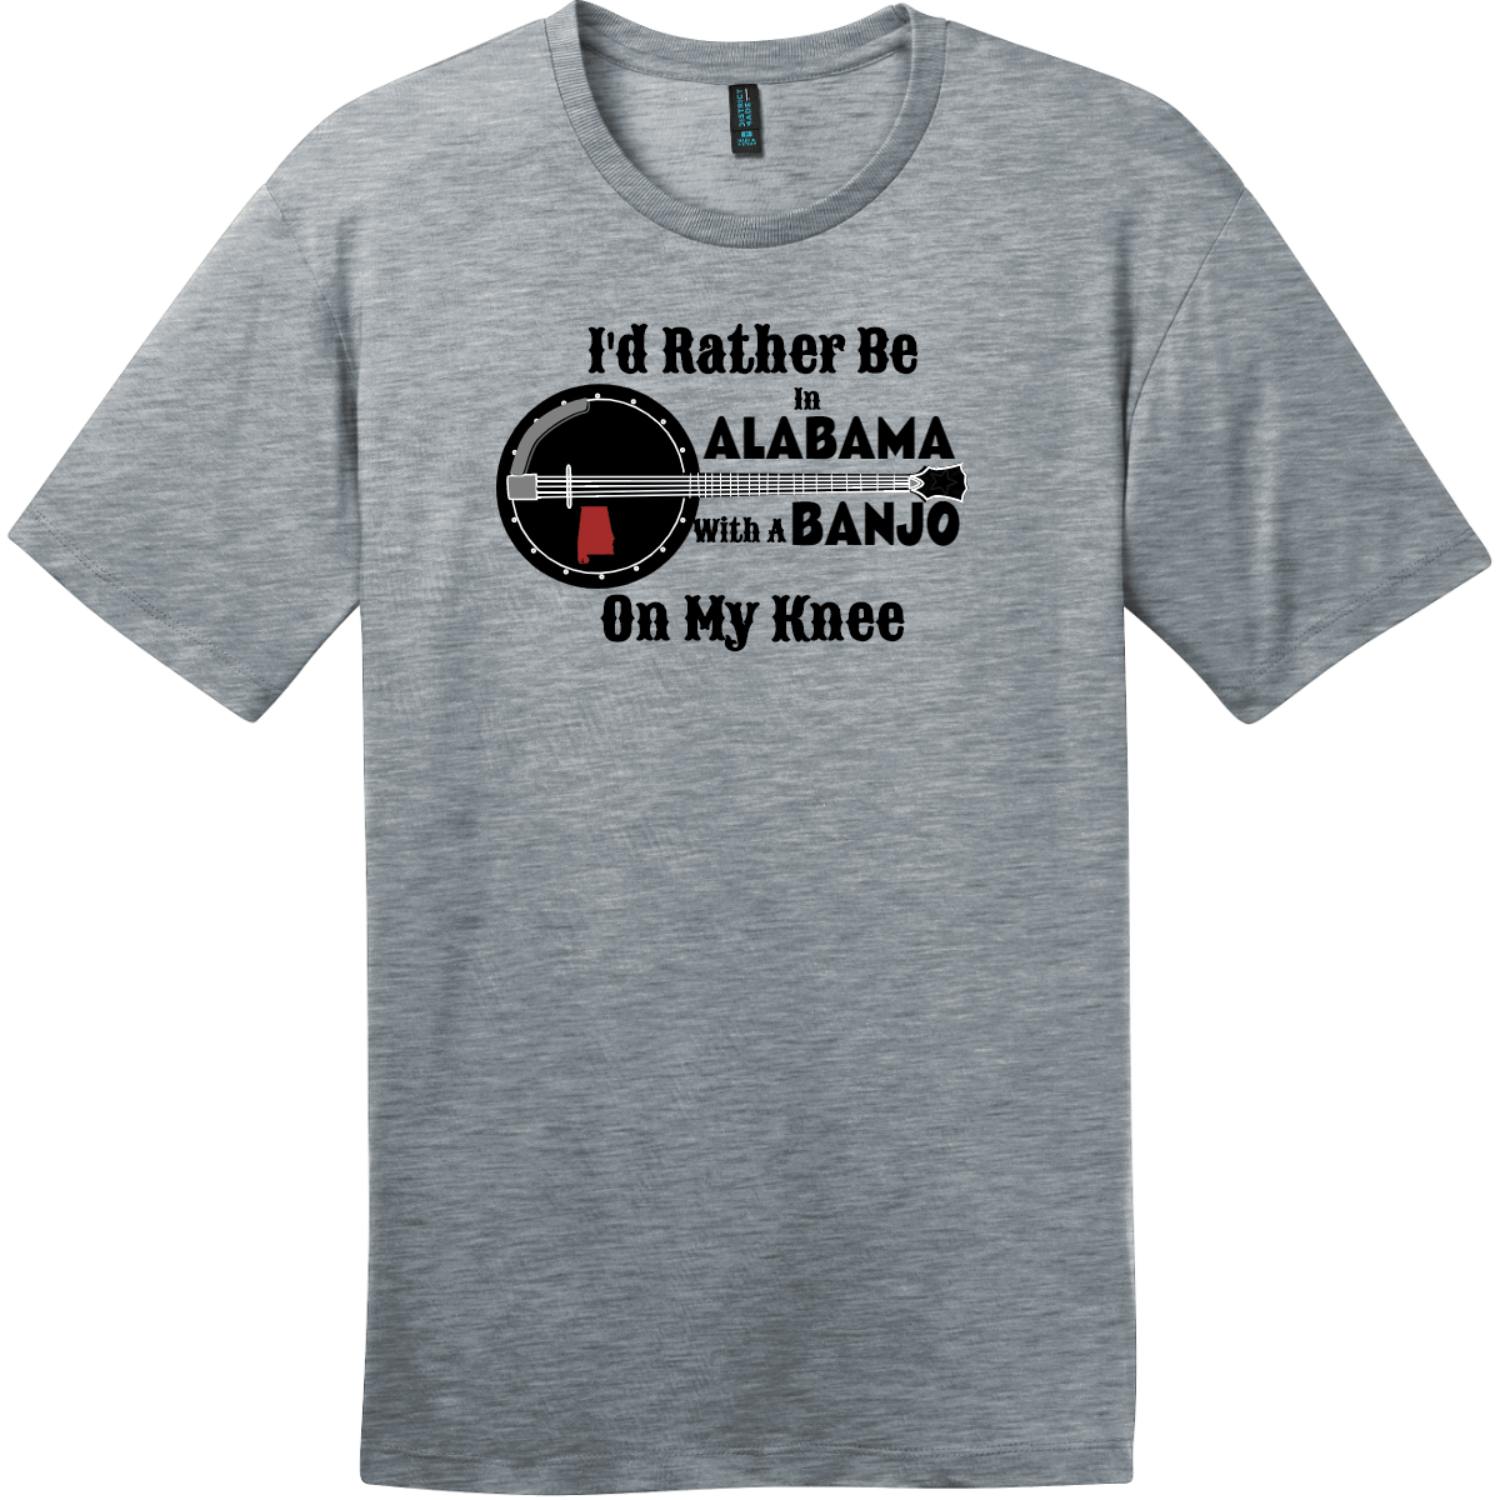 Rather Be In Alabama Banjo T-Shirt Heathered Steel District Perfect Weight Tee DT104